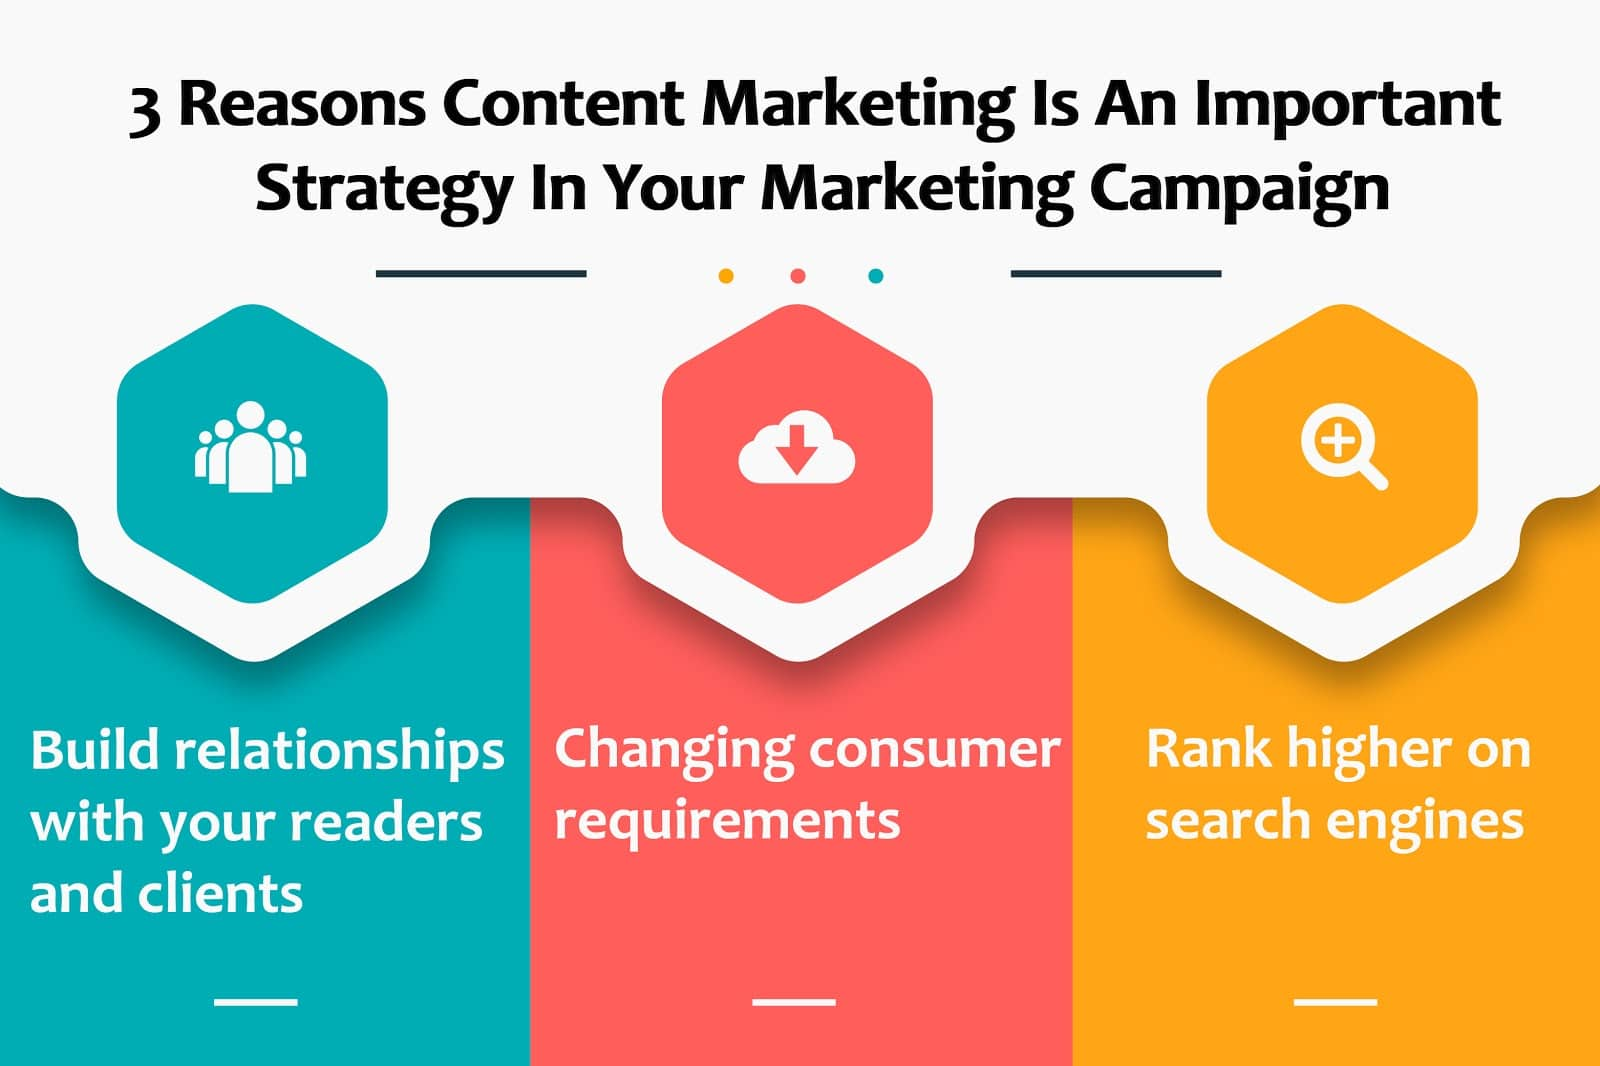 3 reasons content markeitng is an important strategy in your marketing campaign